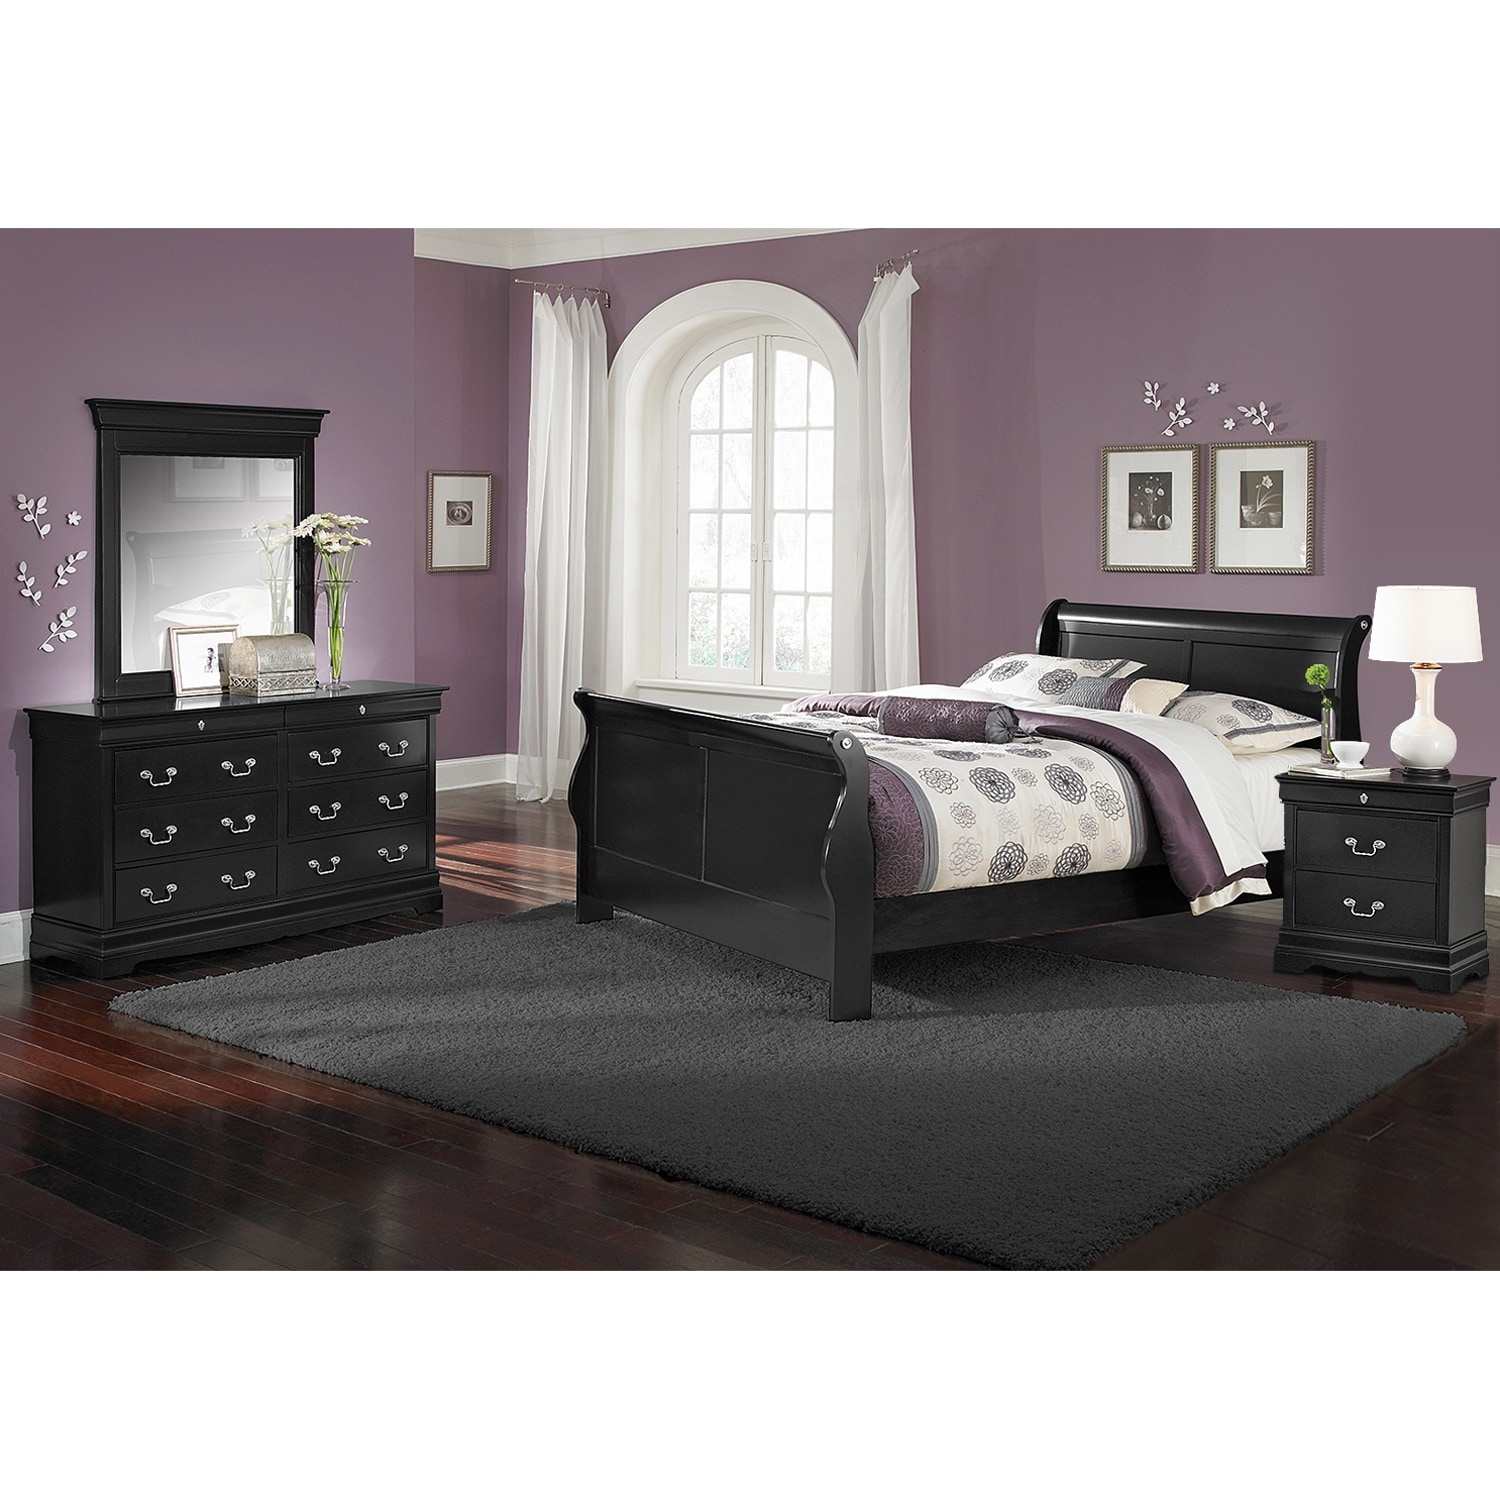 Awesome Full Bedroom Set Collection